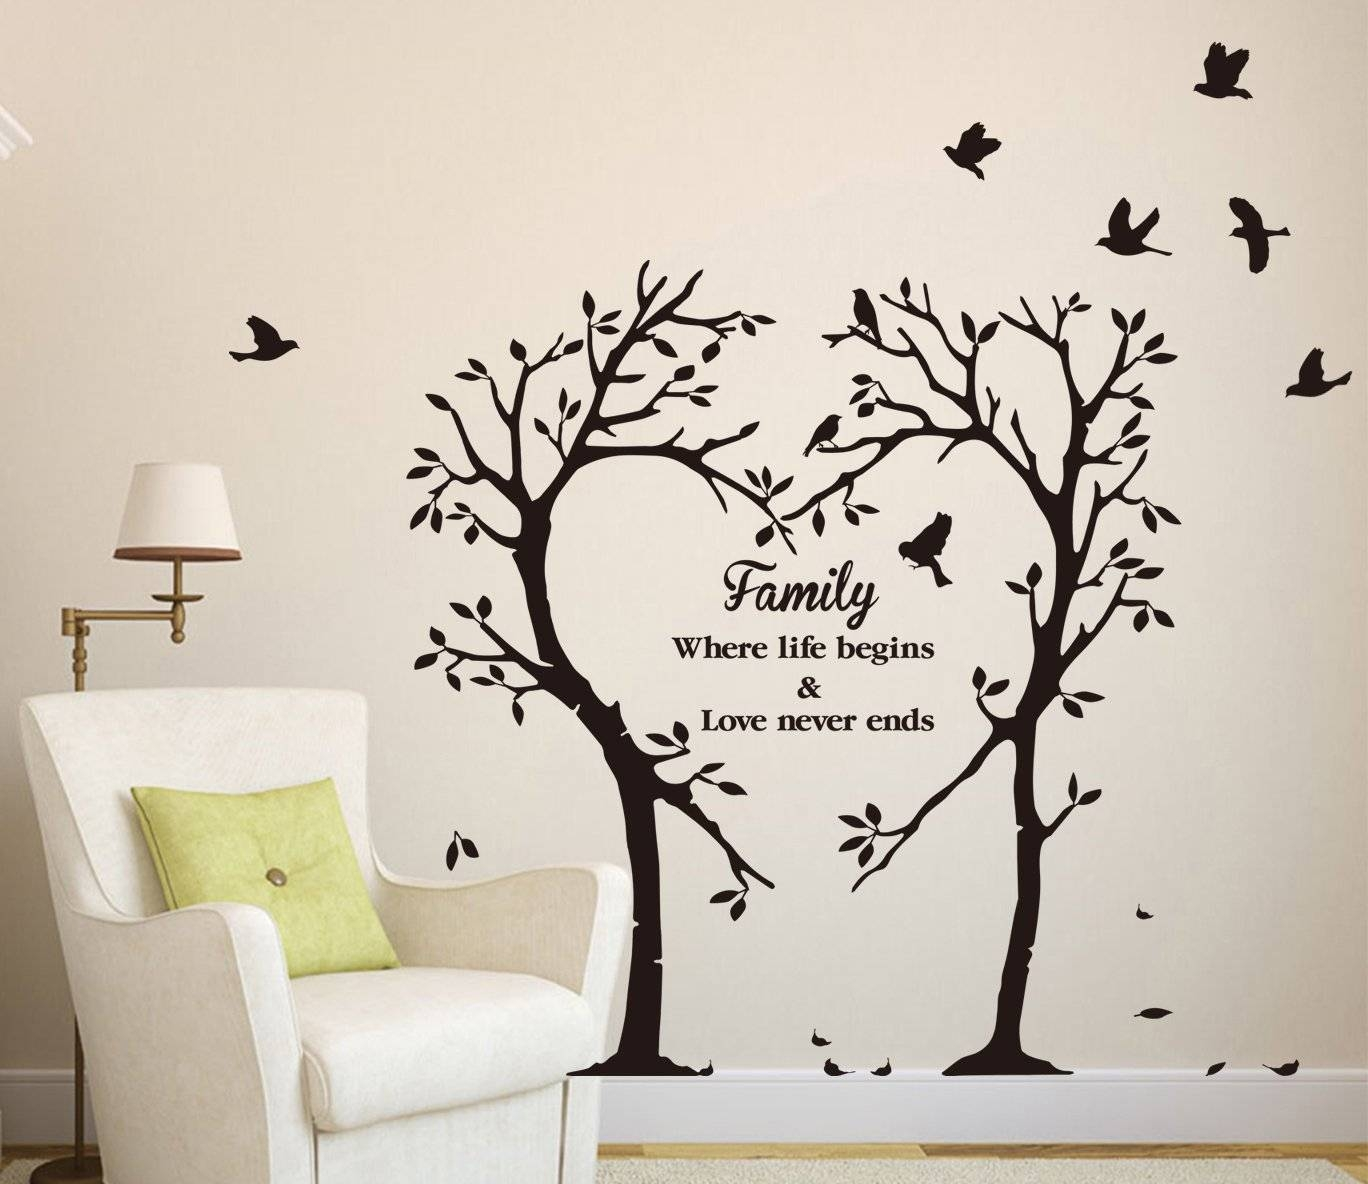 Wall Design: Family Wall Art Images (View 25 of 25)